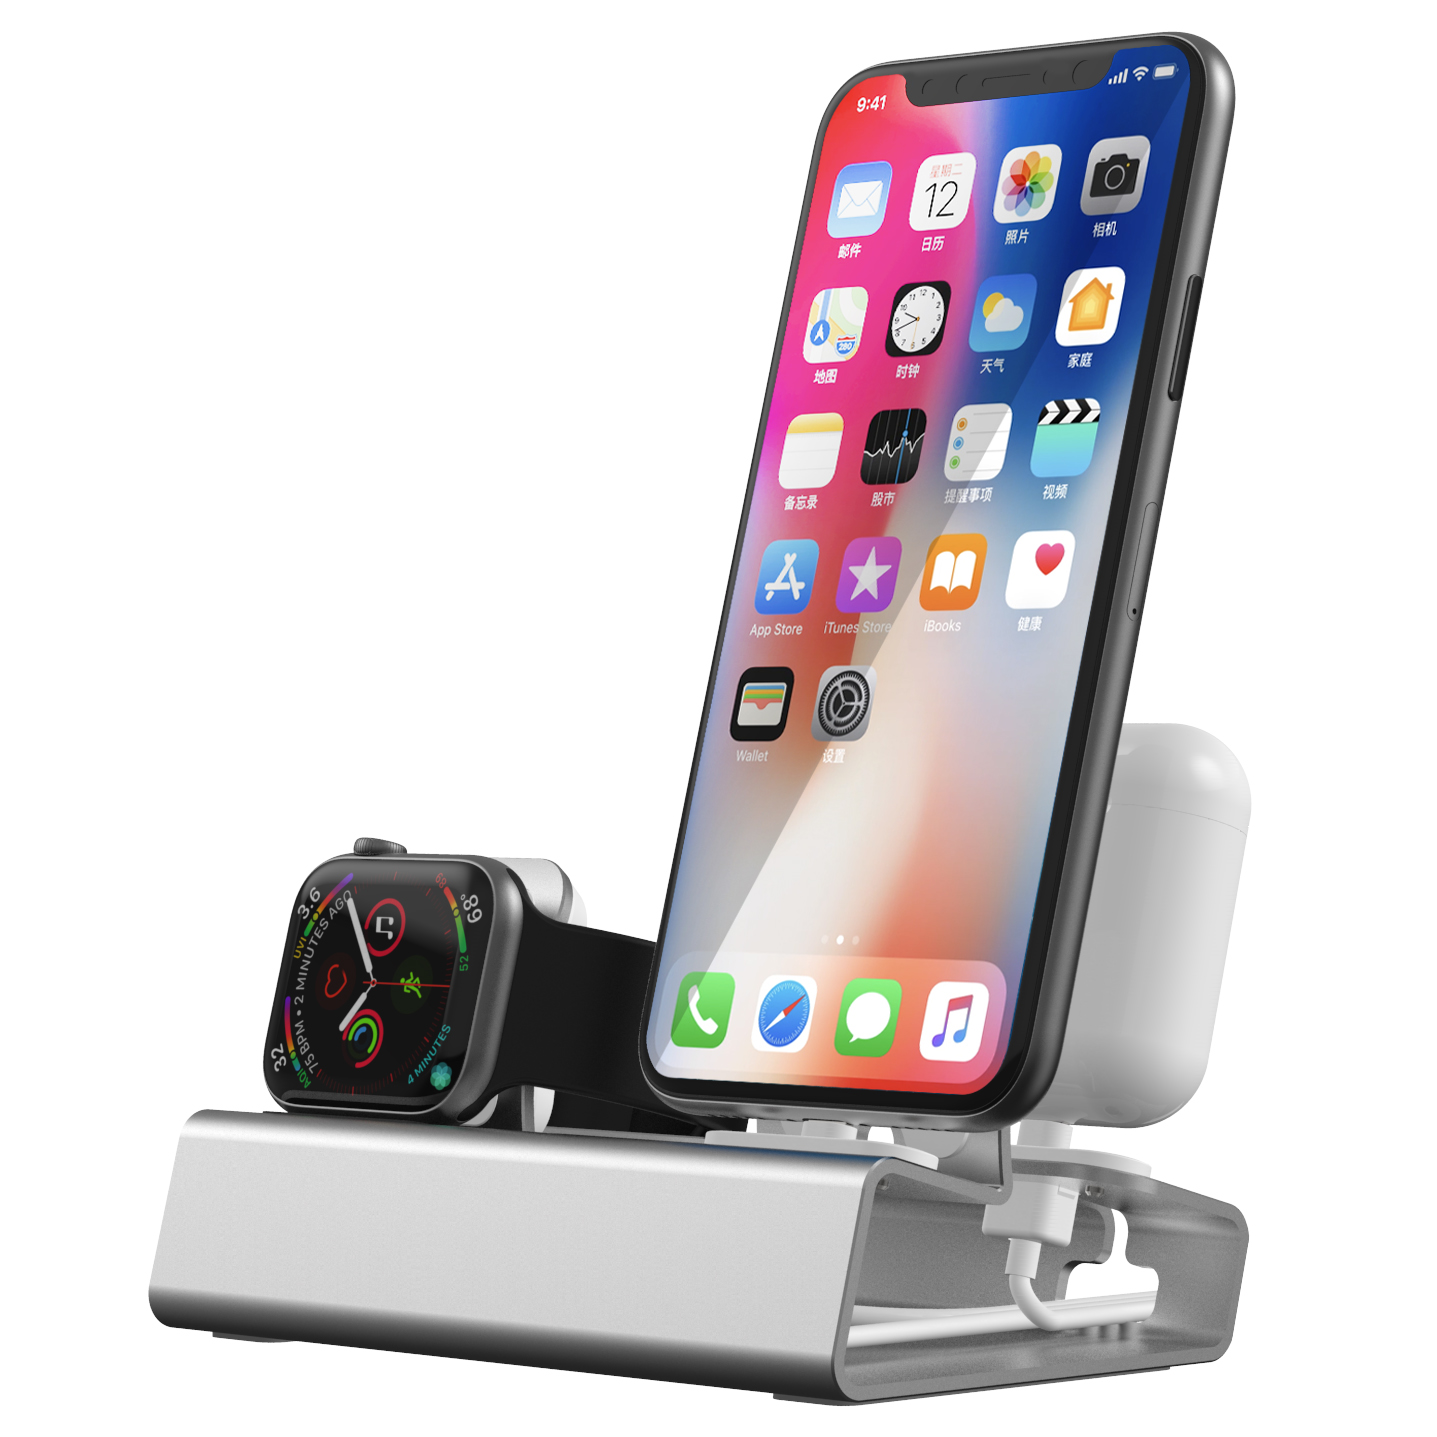 iWatch Charging Stand, 3 in 1 Aluminum Stand for Airpods iPhone Apple Watch Charging Station for Apple Products Compatible with Apple Watch Series 4/3/2/1 NightStand Mode & Airpods iPhone with Case